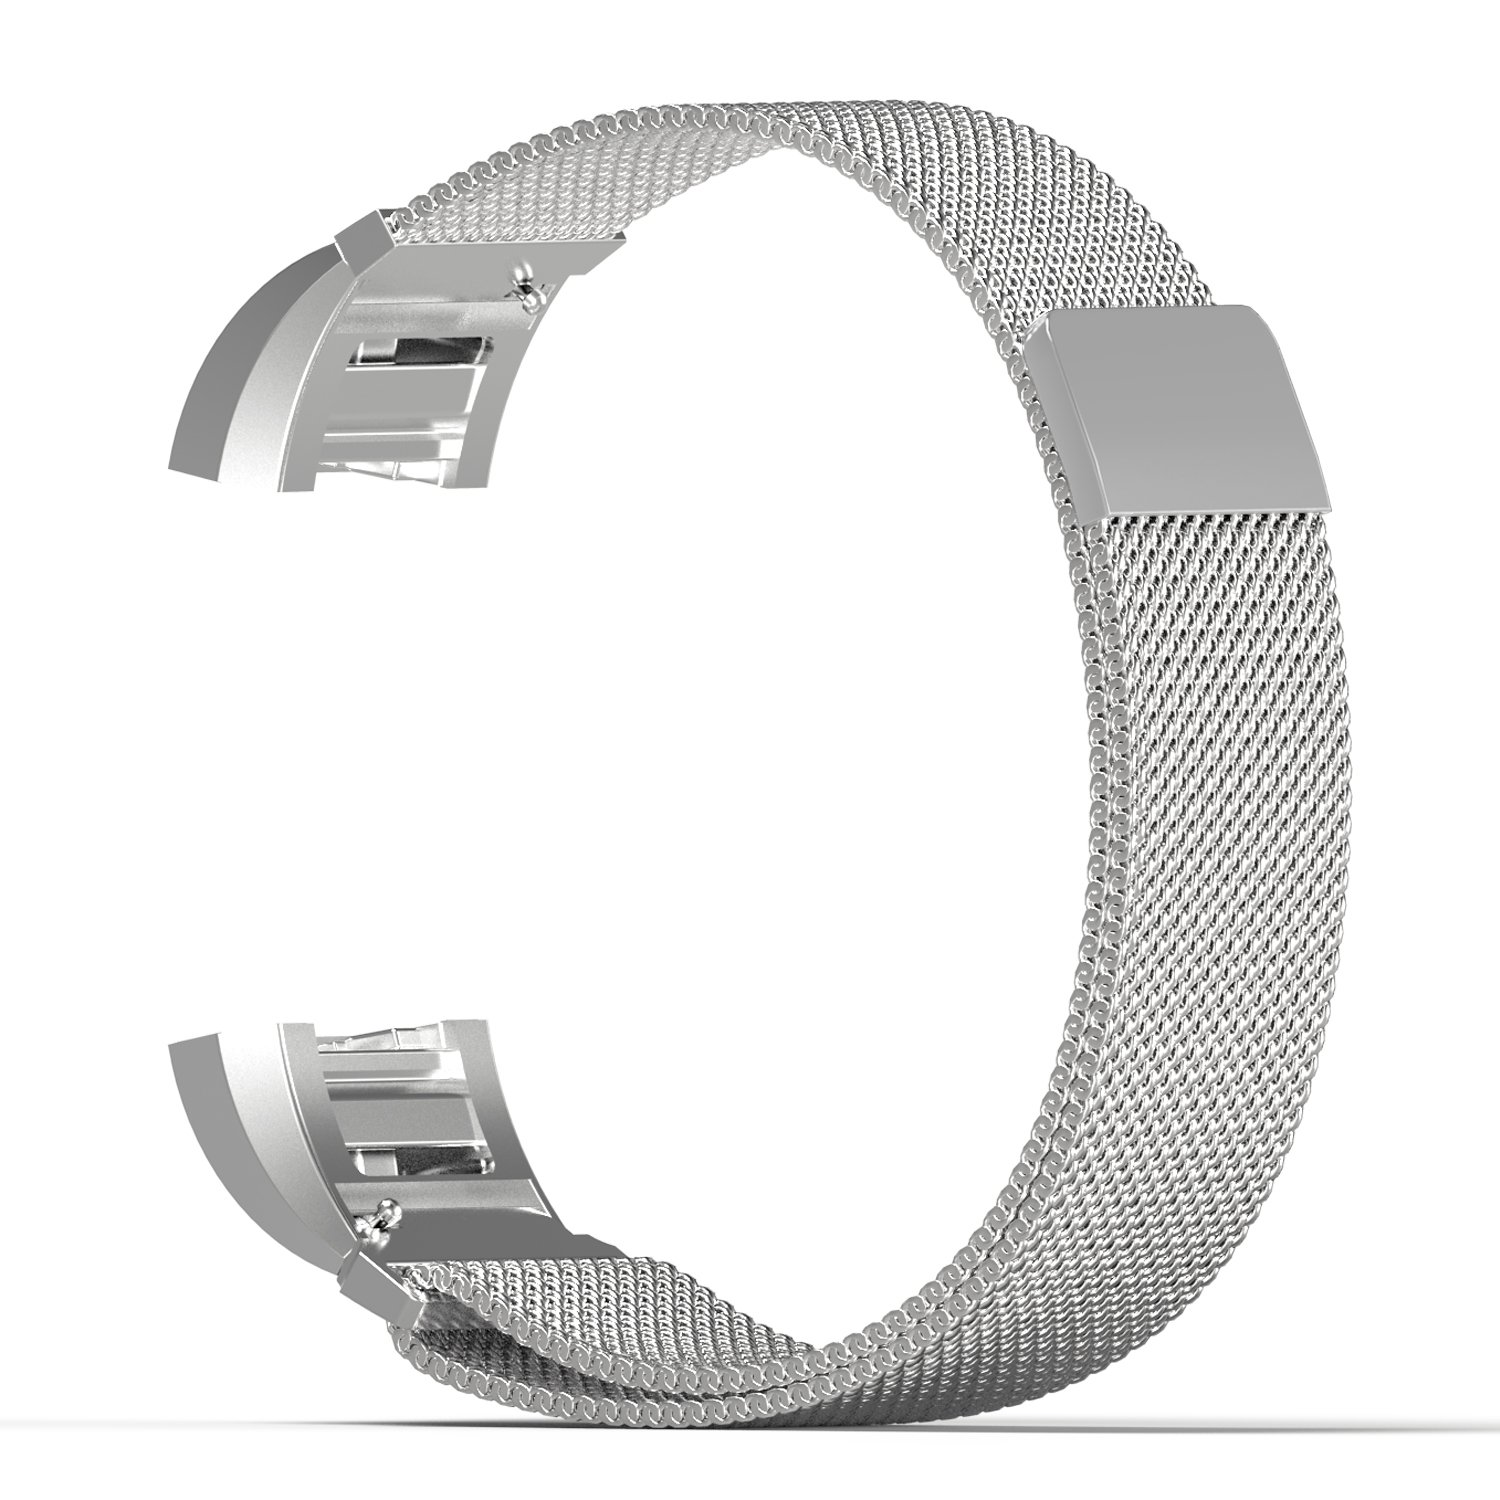 silver steel small wristband band strap bracelet accessories for fitbit charge 2 ebay. Black Bedroom Furniture Sets. Home Design Ideas